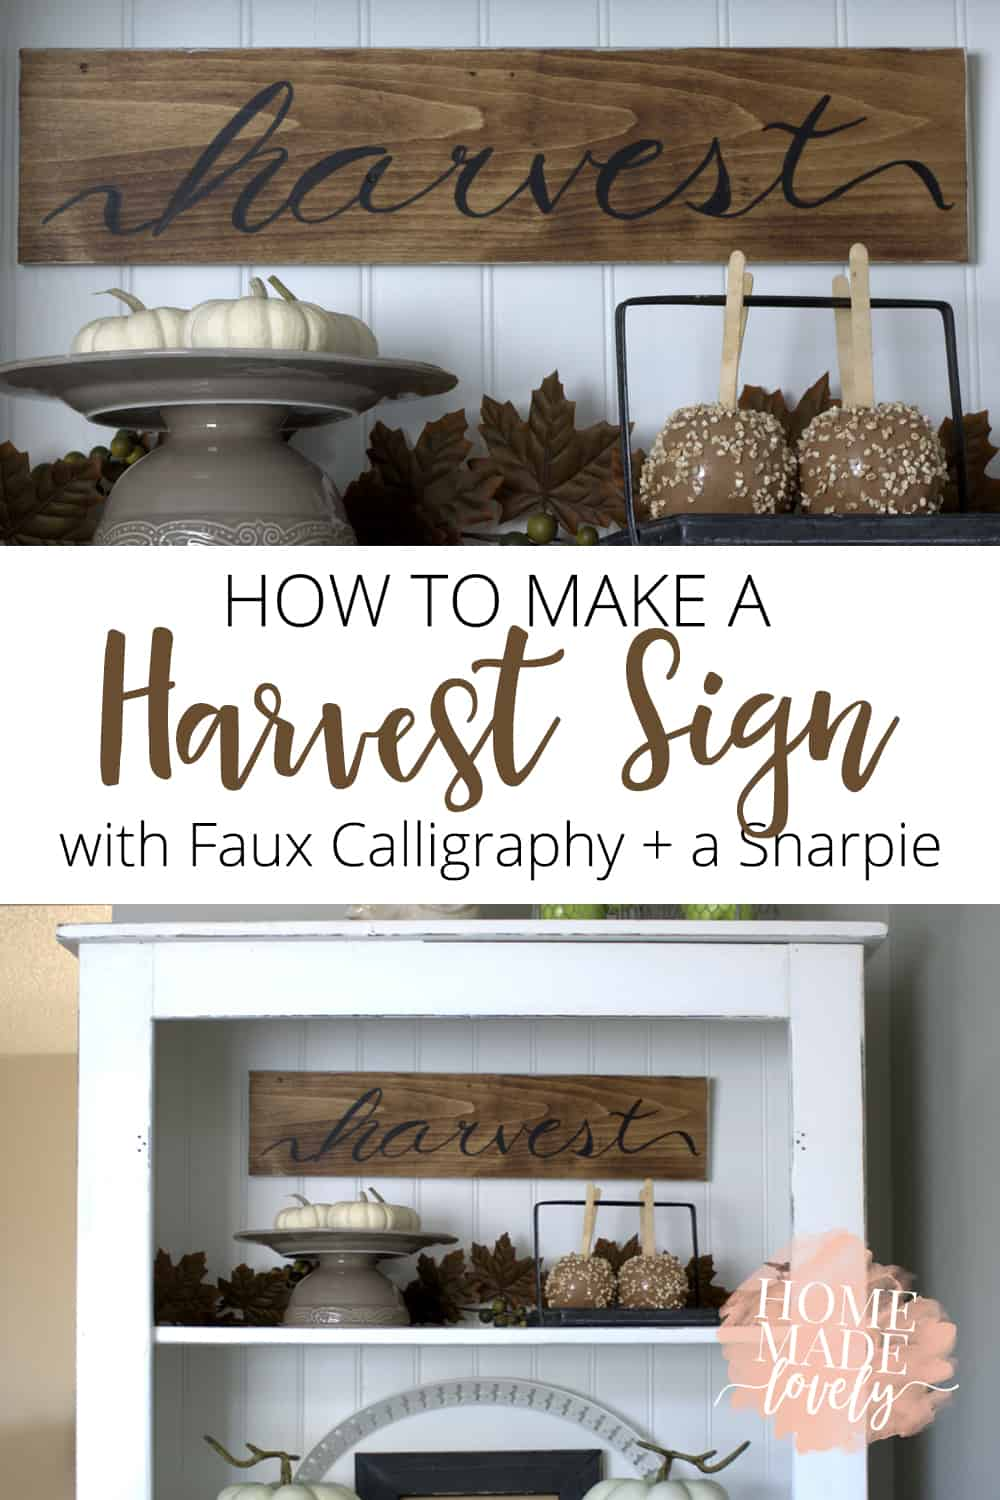 Harvest Sign On Barnwood For Fall Front Porch Decor: How To Make A Harvest Sign With Faux Calligraphy + A Sharpie